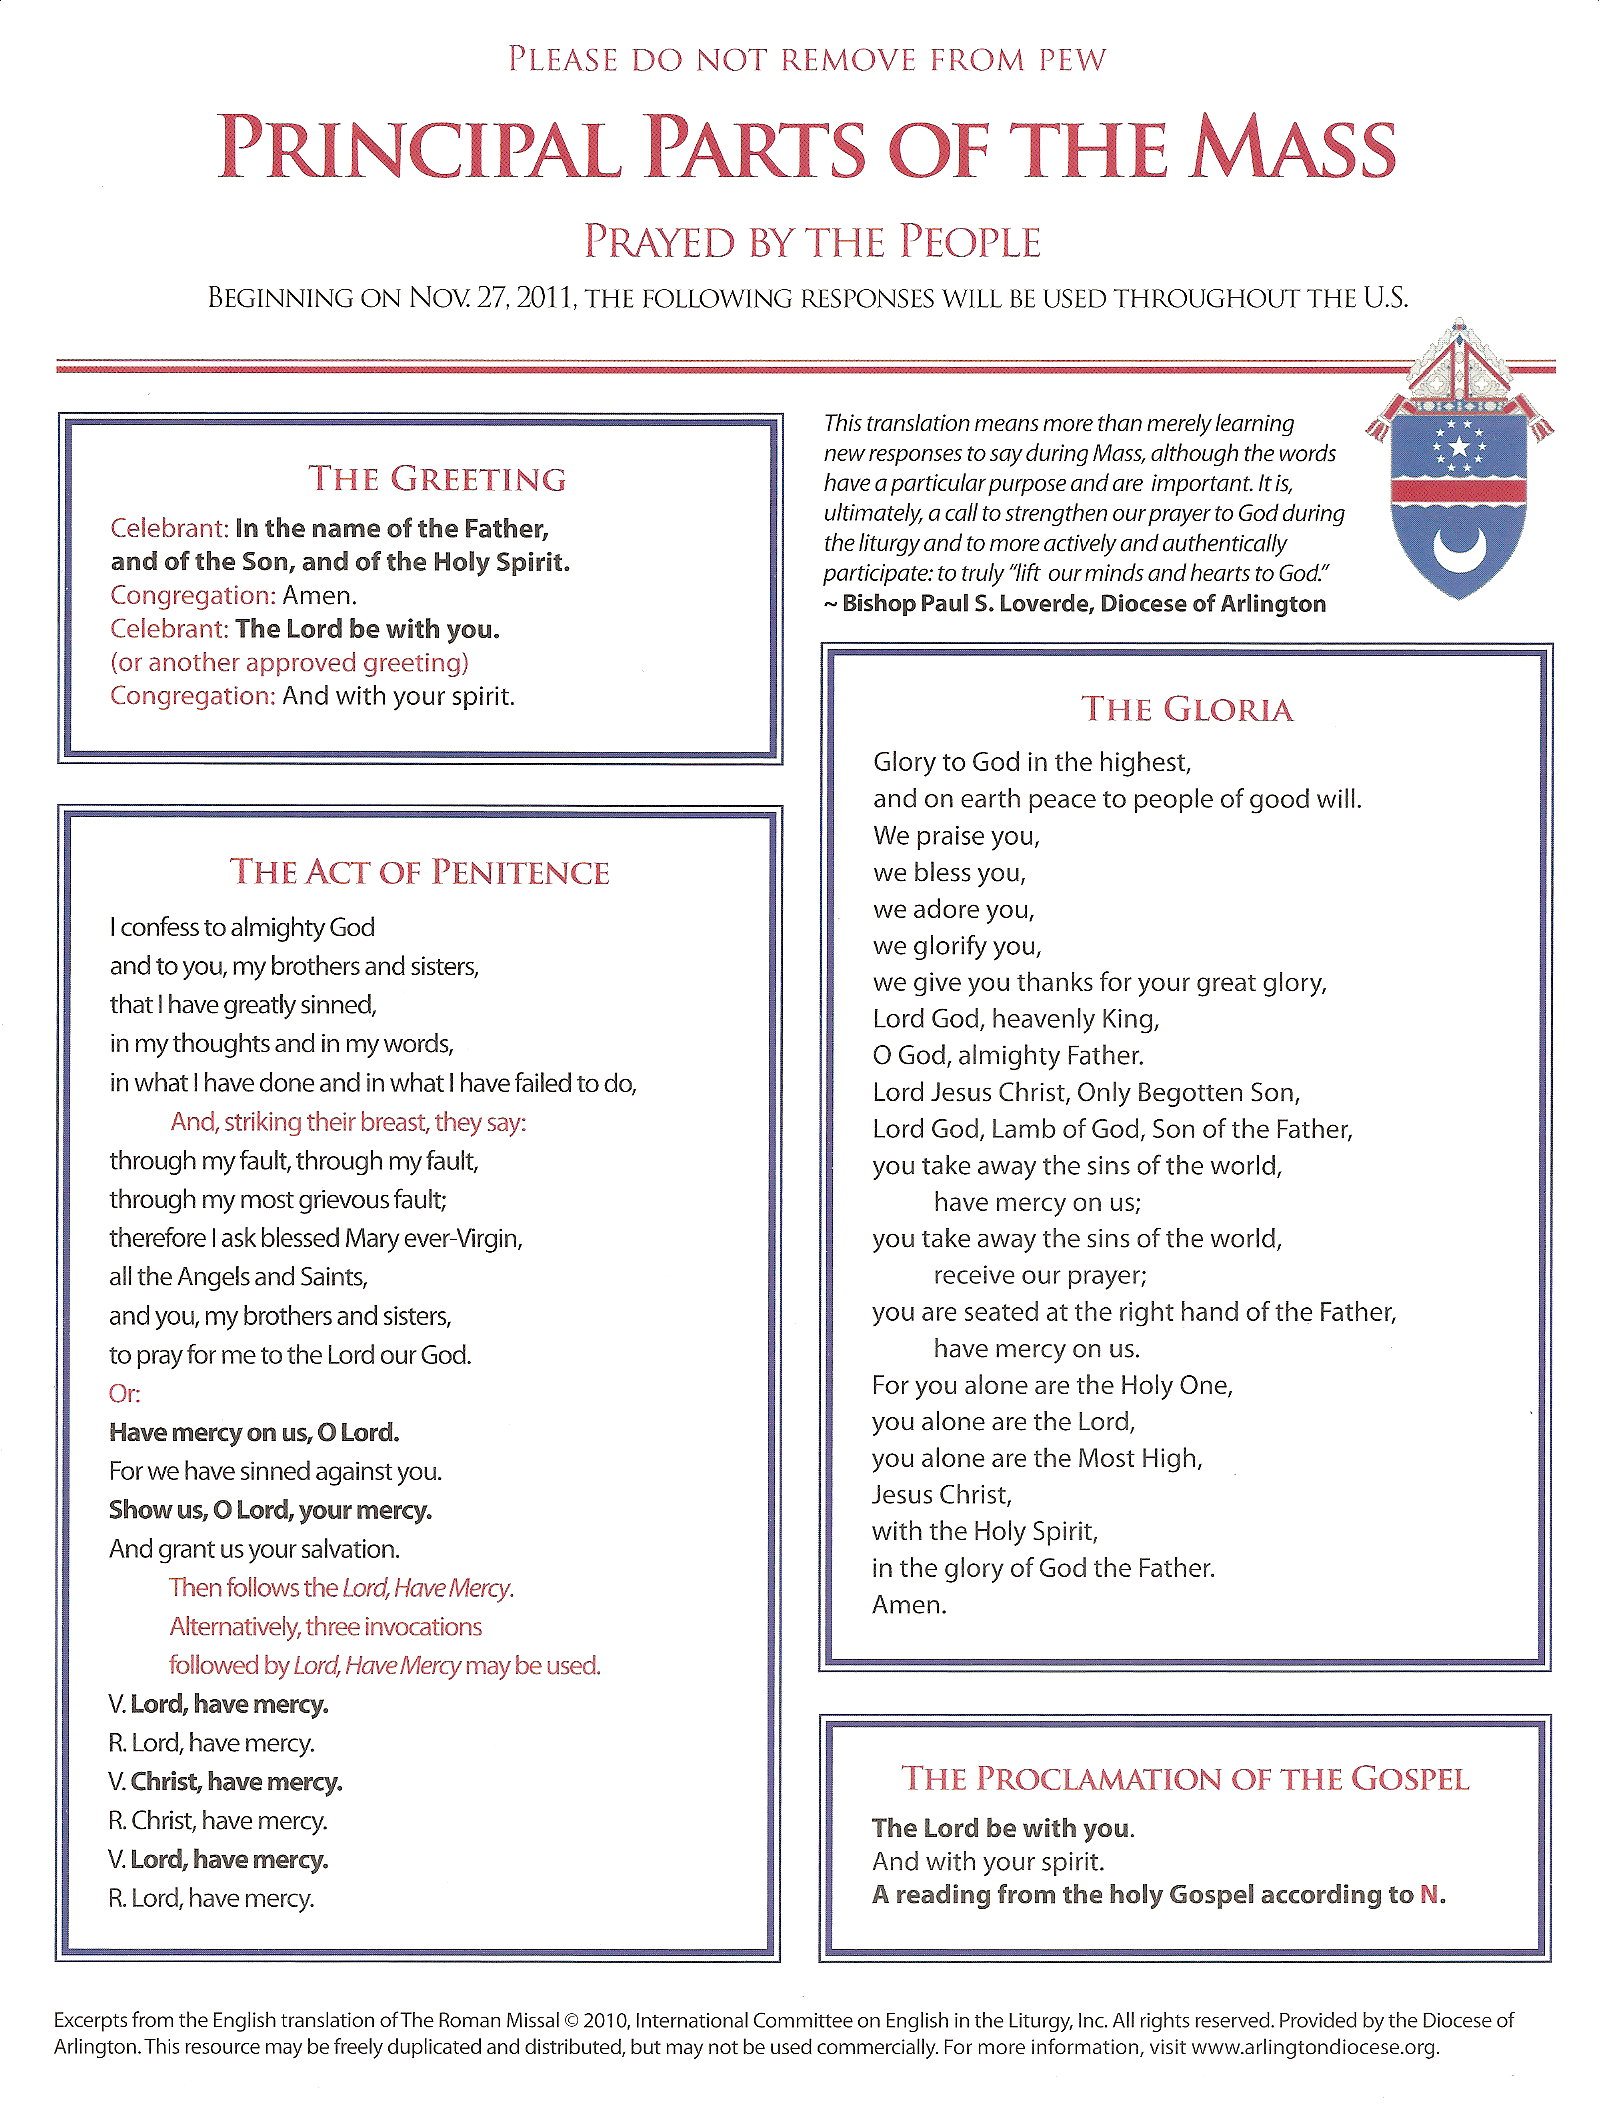 Catholic Virtues Worksheet